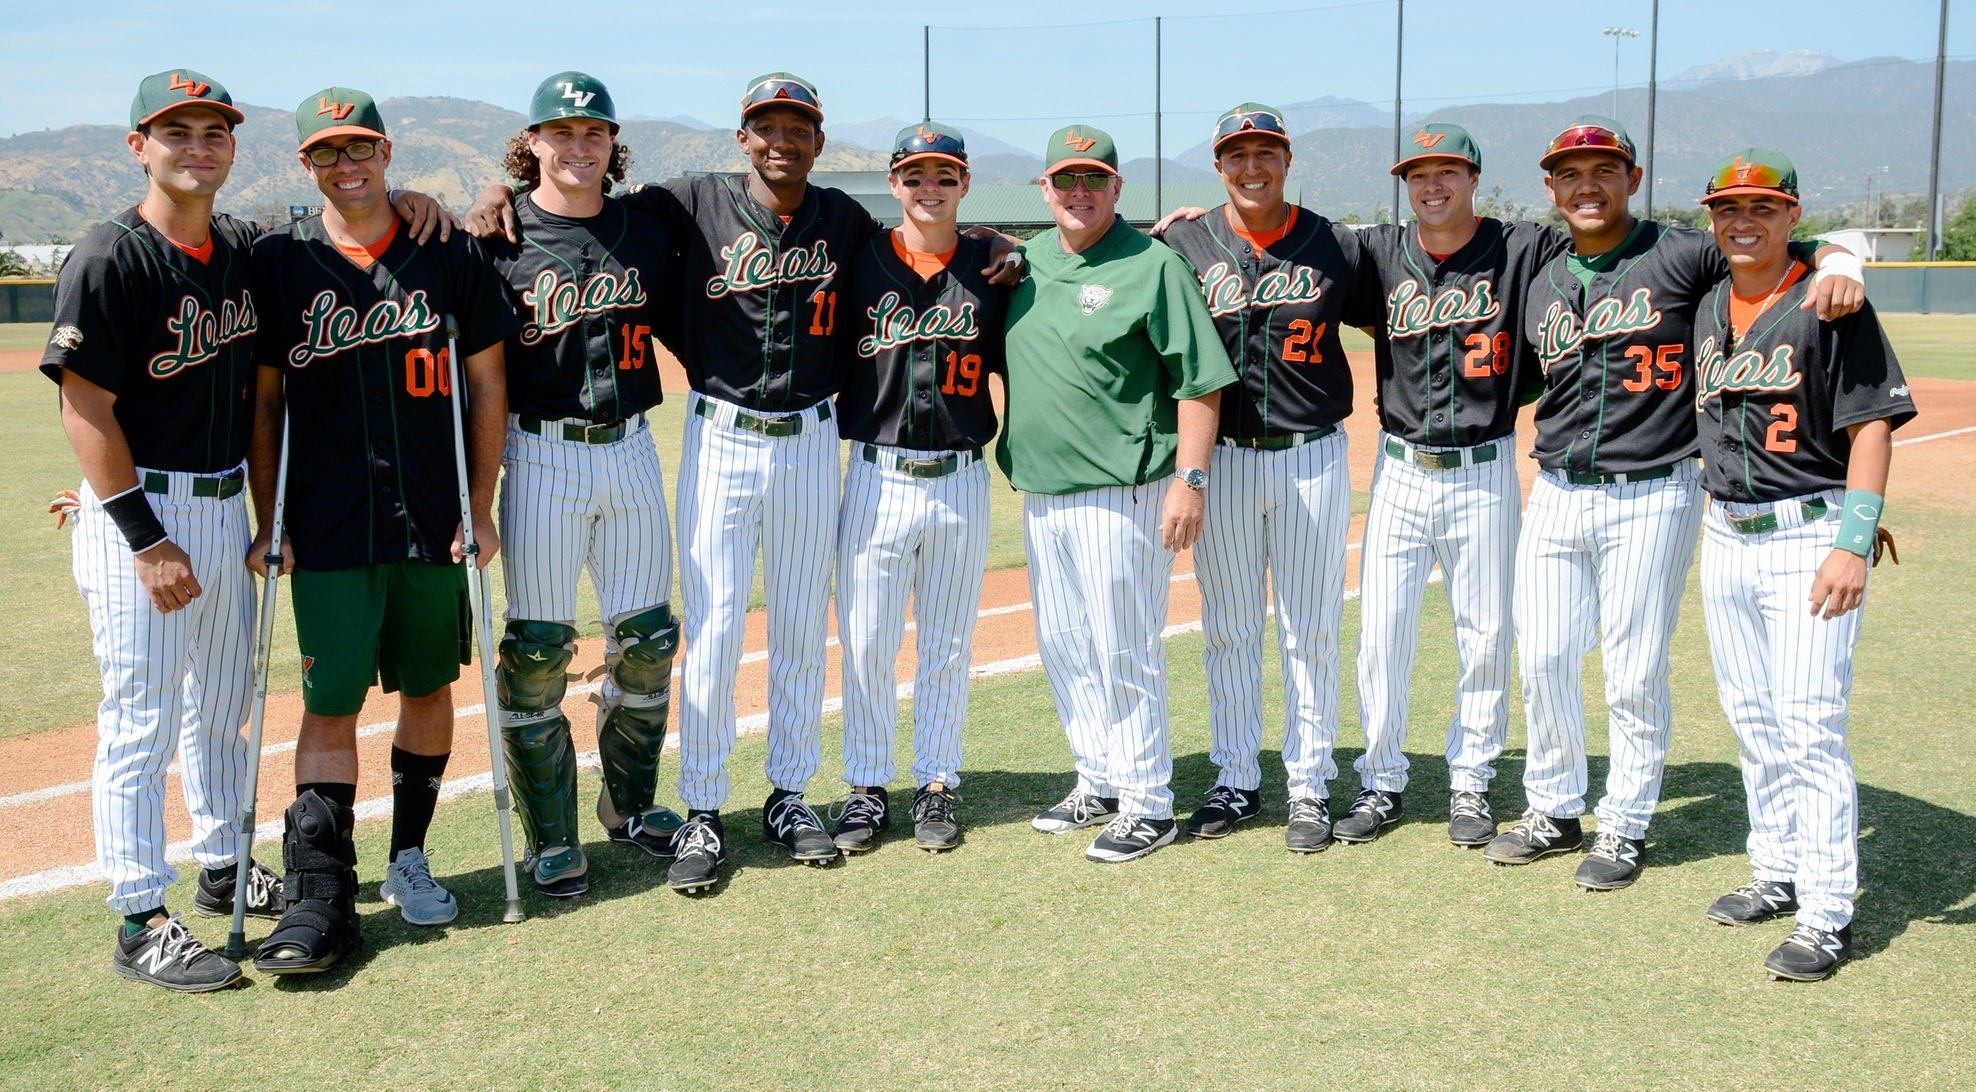 Baseball rallies to beat Whittier 10-9 on Senior Day